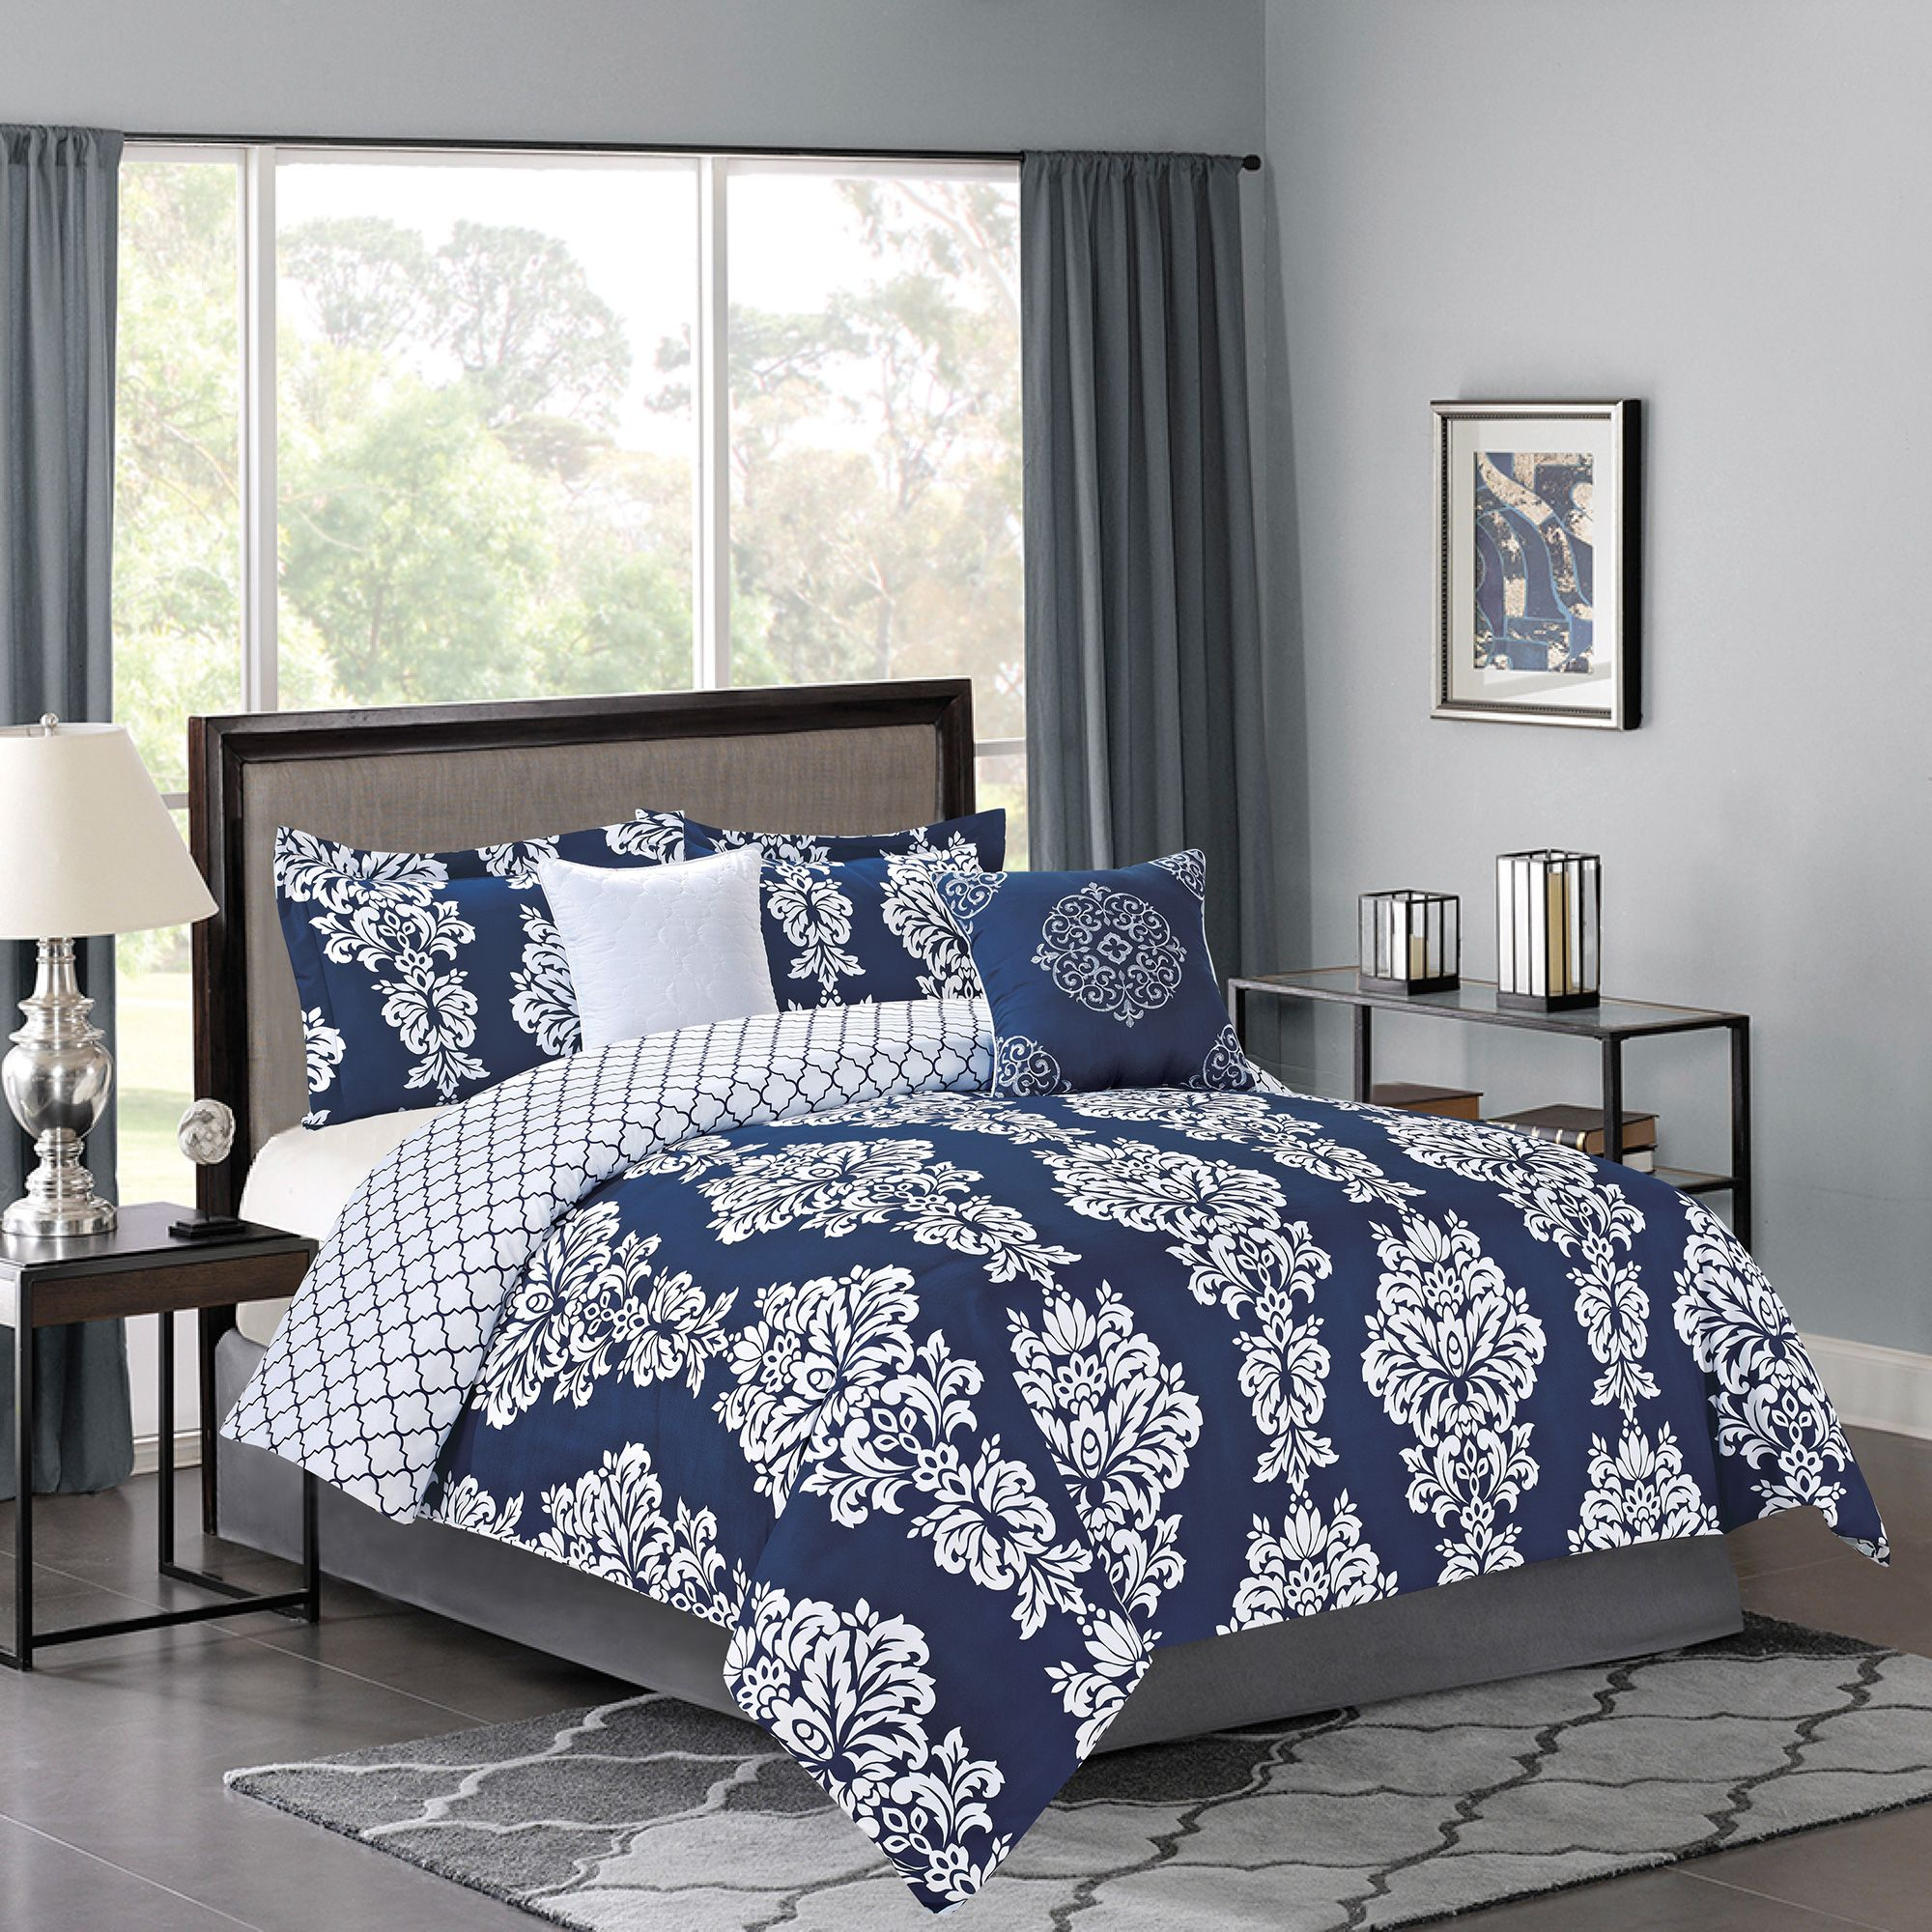 5 Piece Nancy Comforter Bedding Set Home Home Decor Guest Bedroom